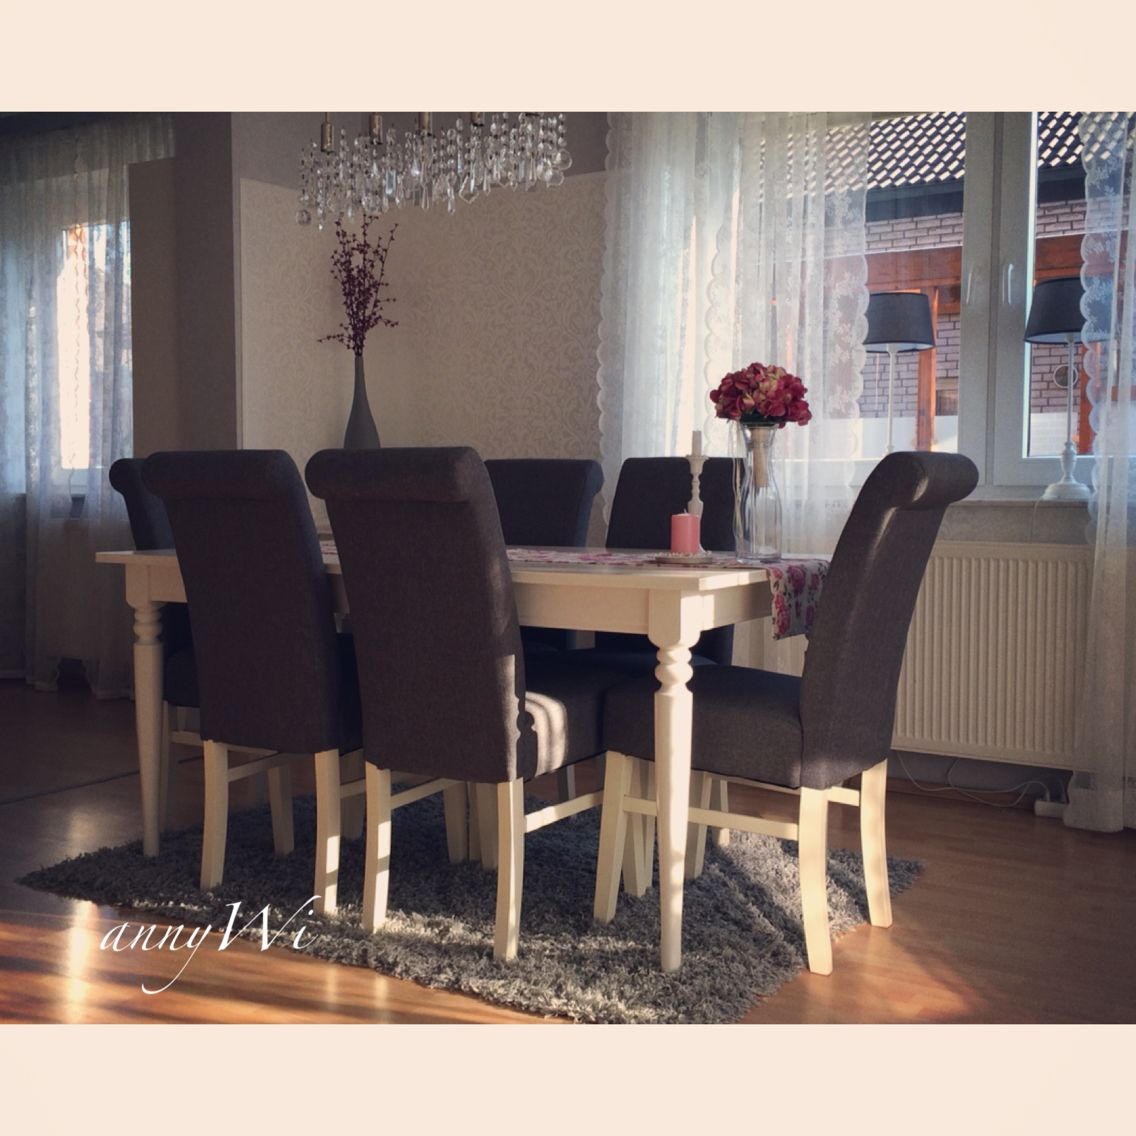 annywi deko wohnung ikea ingatorp esszimmer wohnzimmer landhausstil shabby vintage dining room. Black Bedroom Furniture Sets. Home Design Ideas